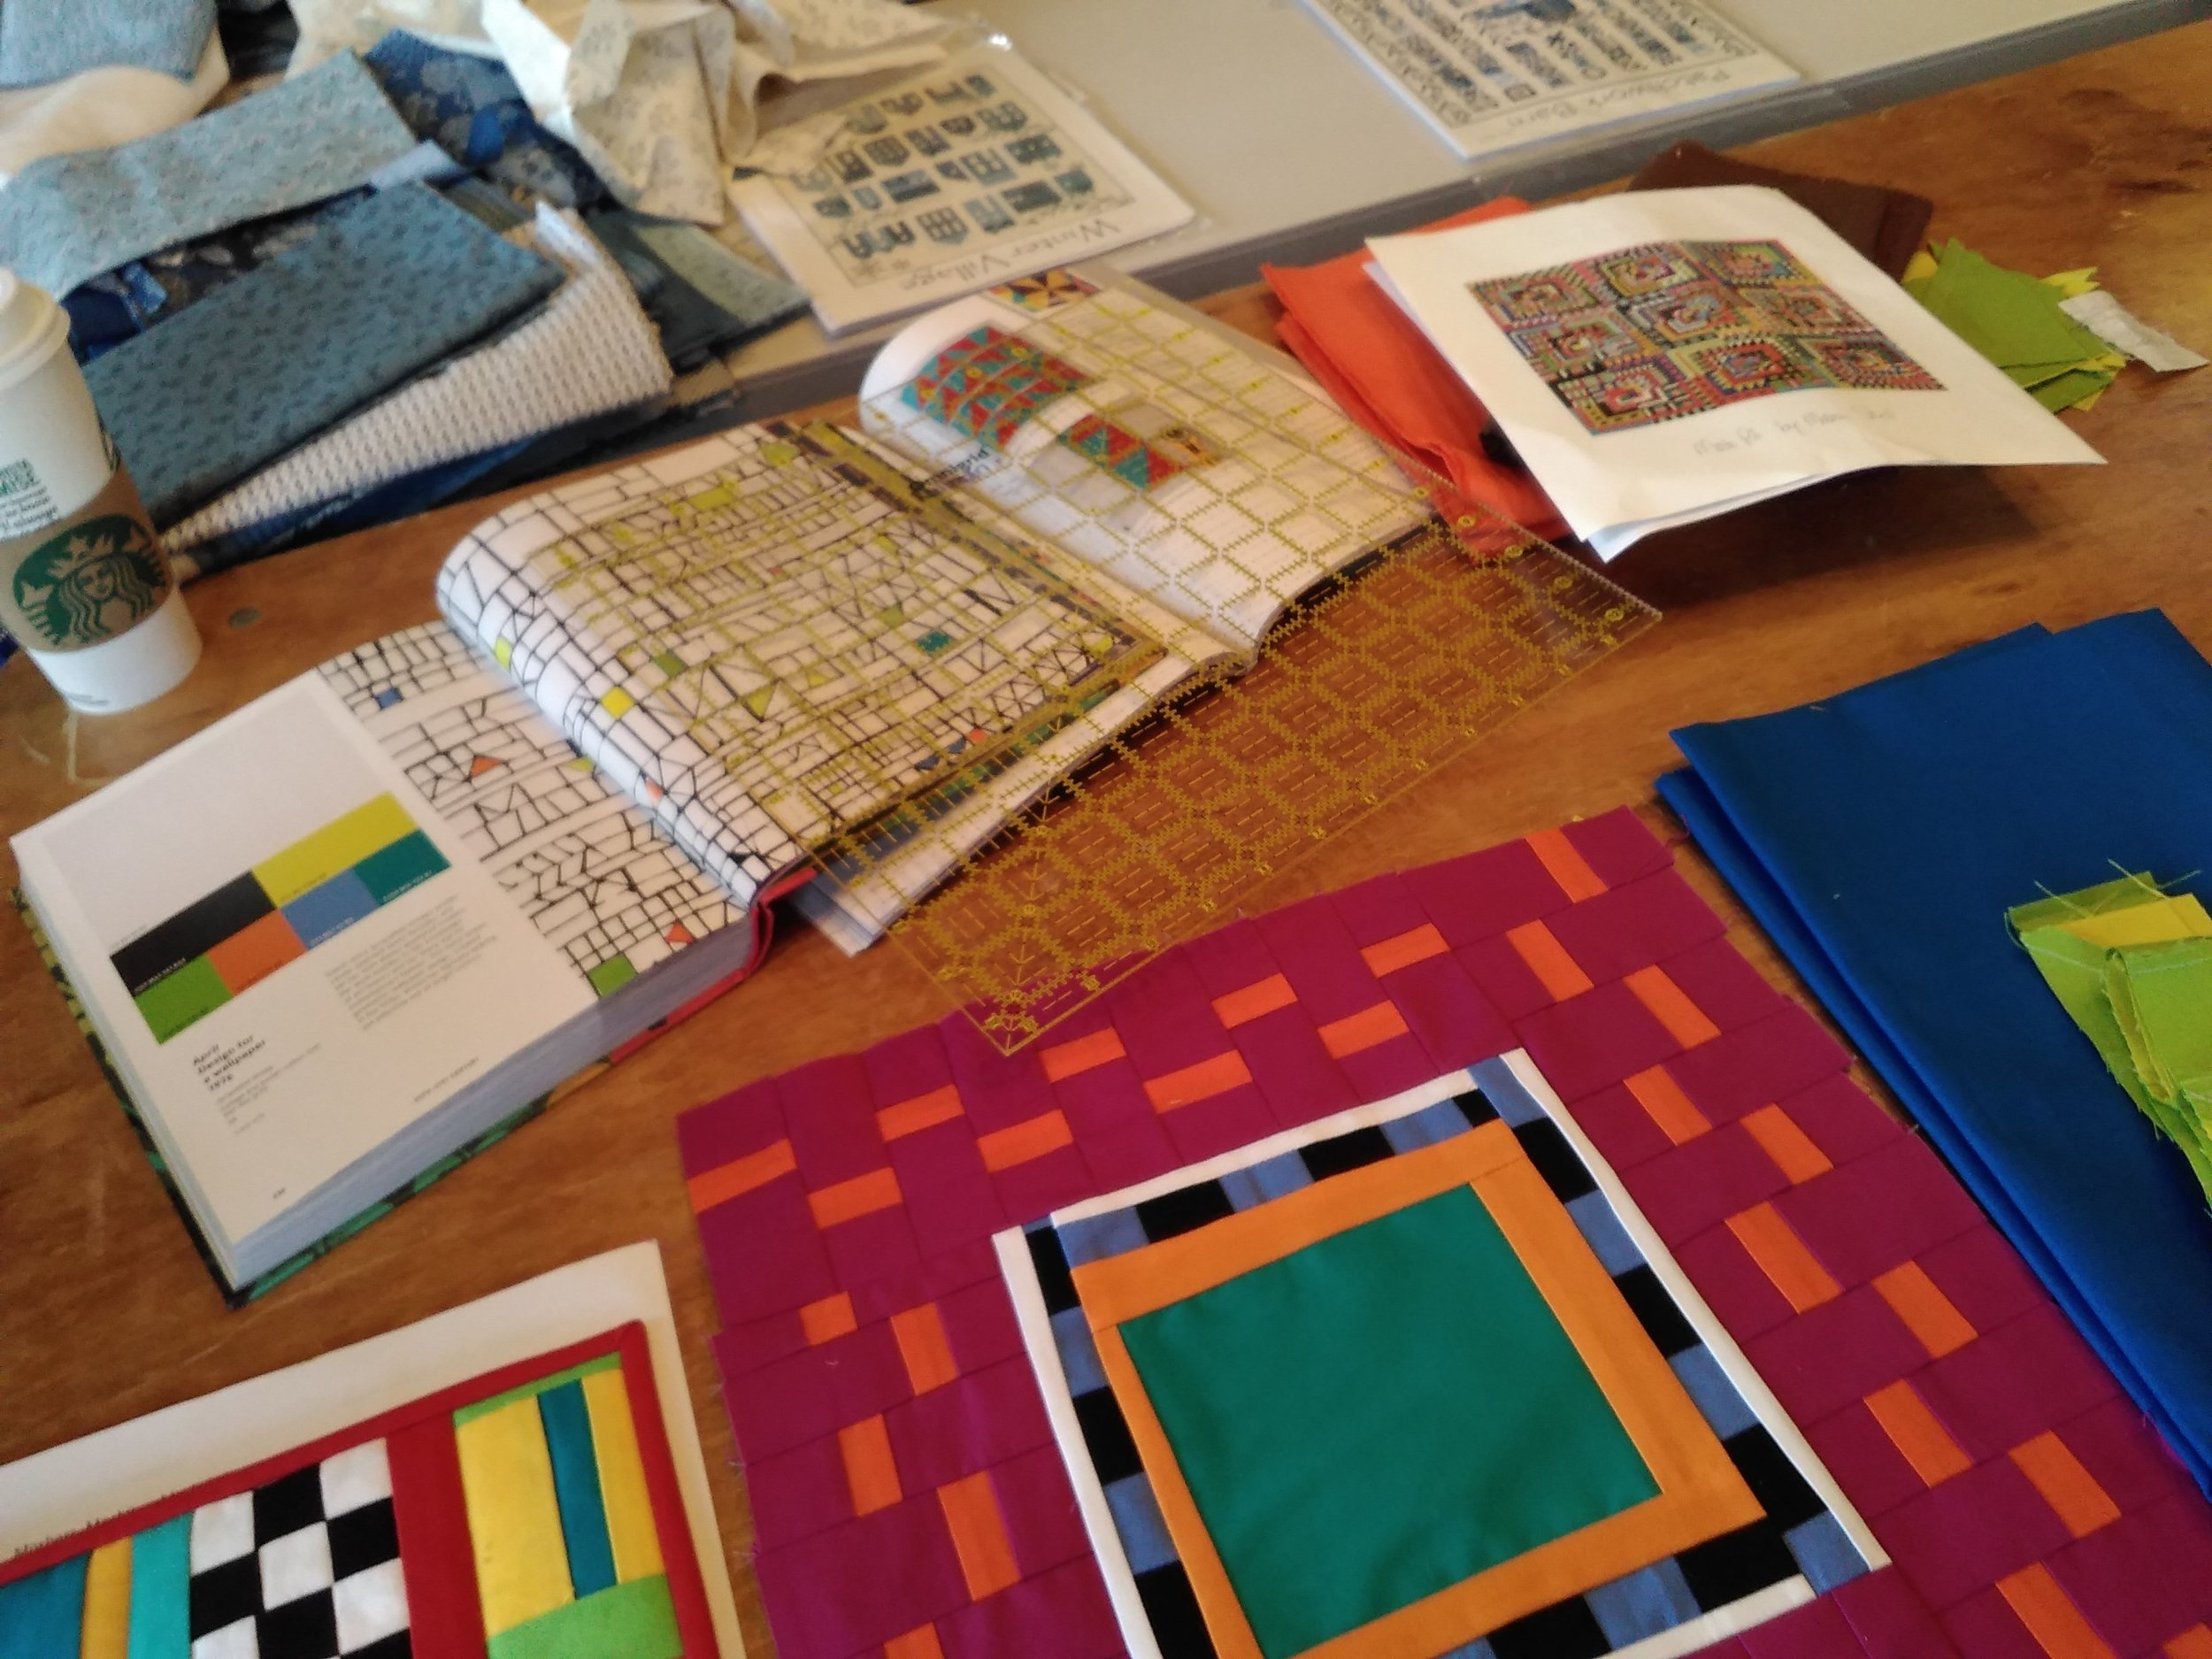 "<img alt= ""Craft books and quilting squares"" />"